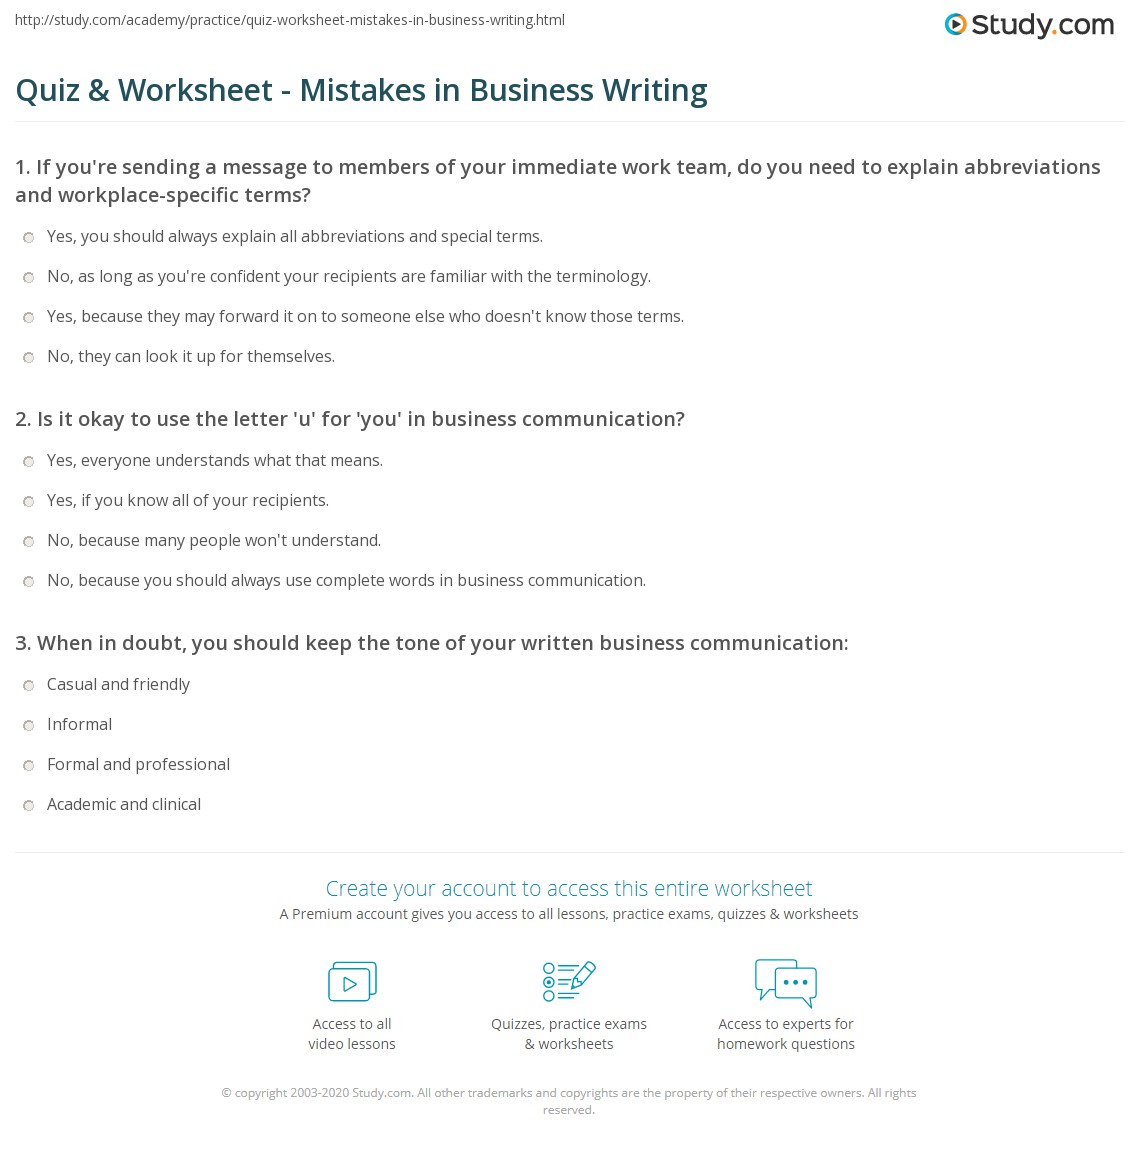 Quiz & Worksheet - Mistakes In Business Writing | Study